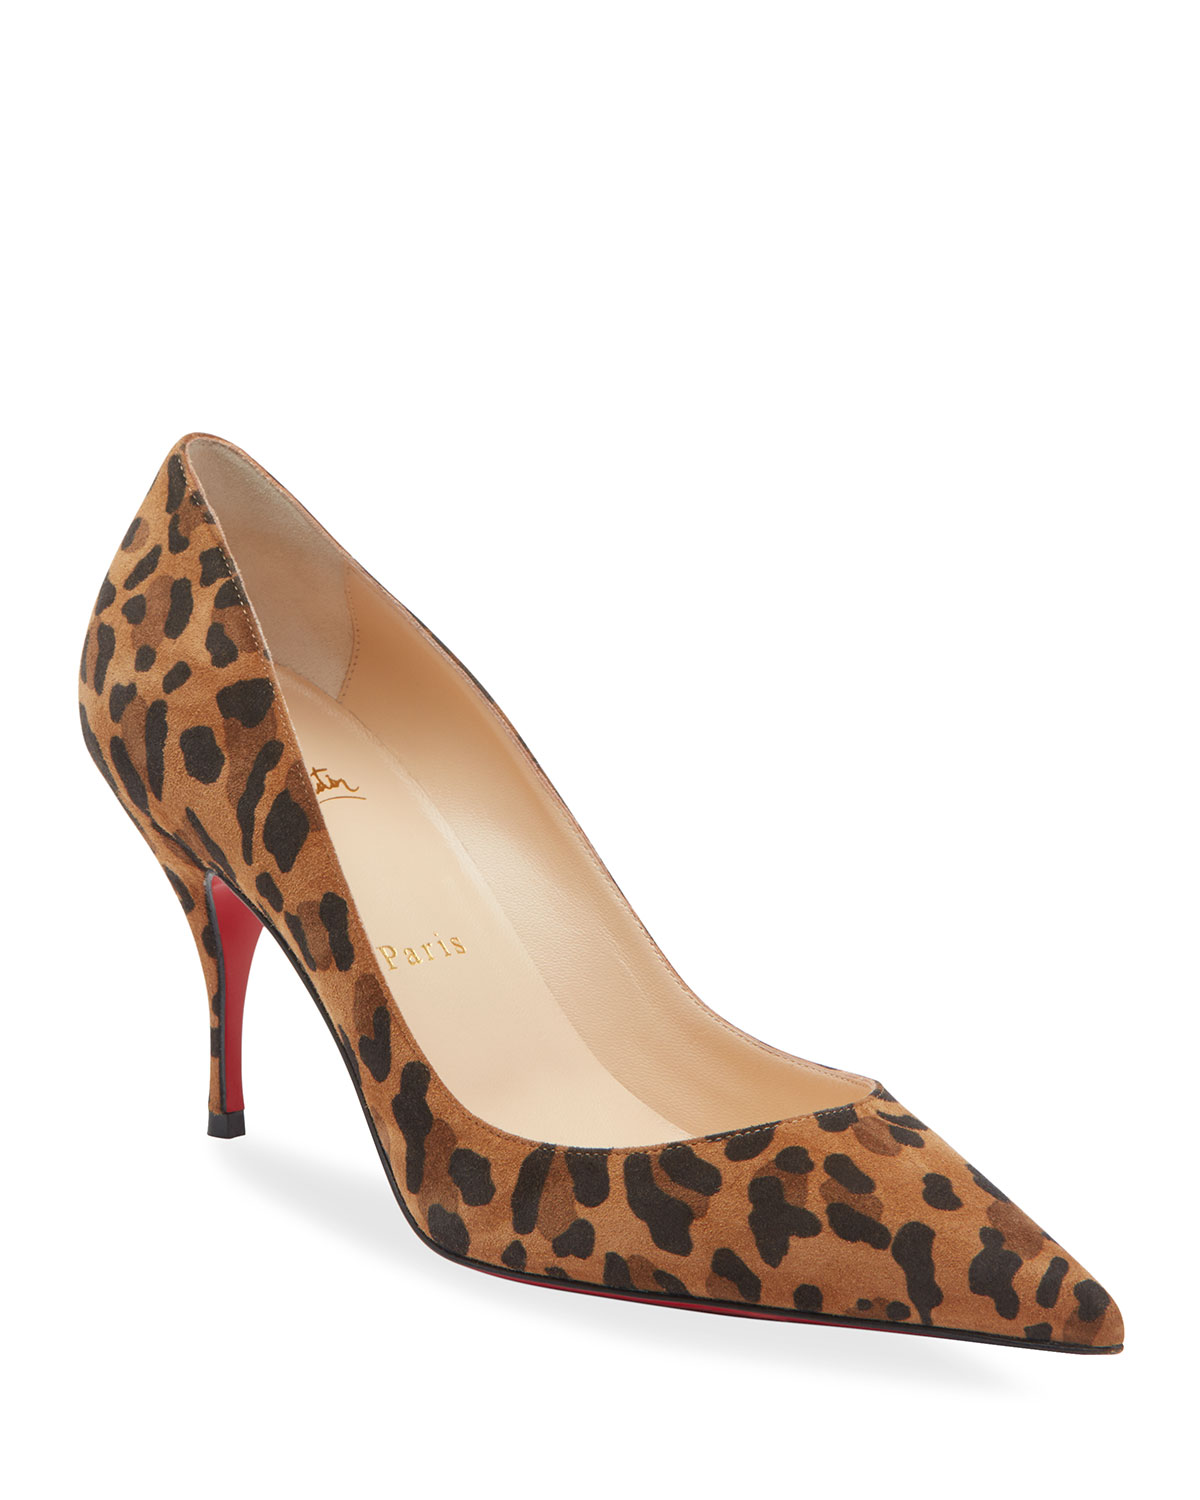 0b77435ff Christian Louboutin Clare 80 Leopard Suede Red Sole Pumps | Neiman ...